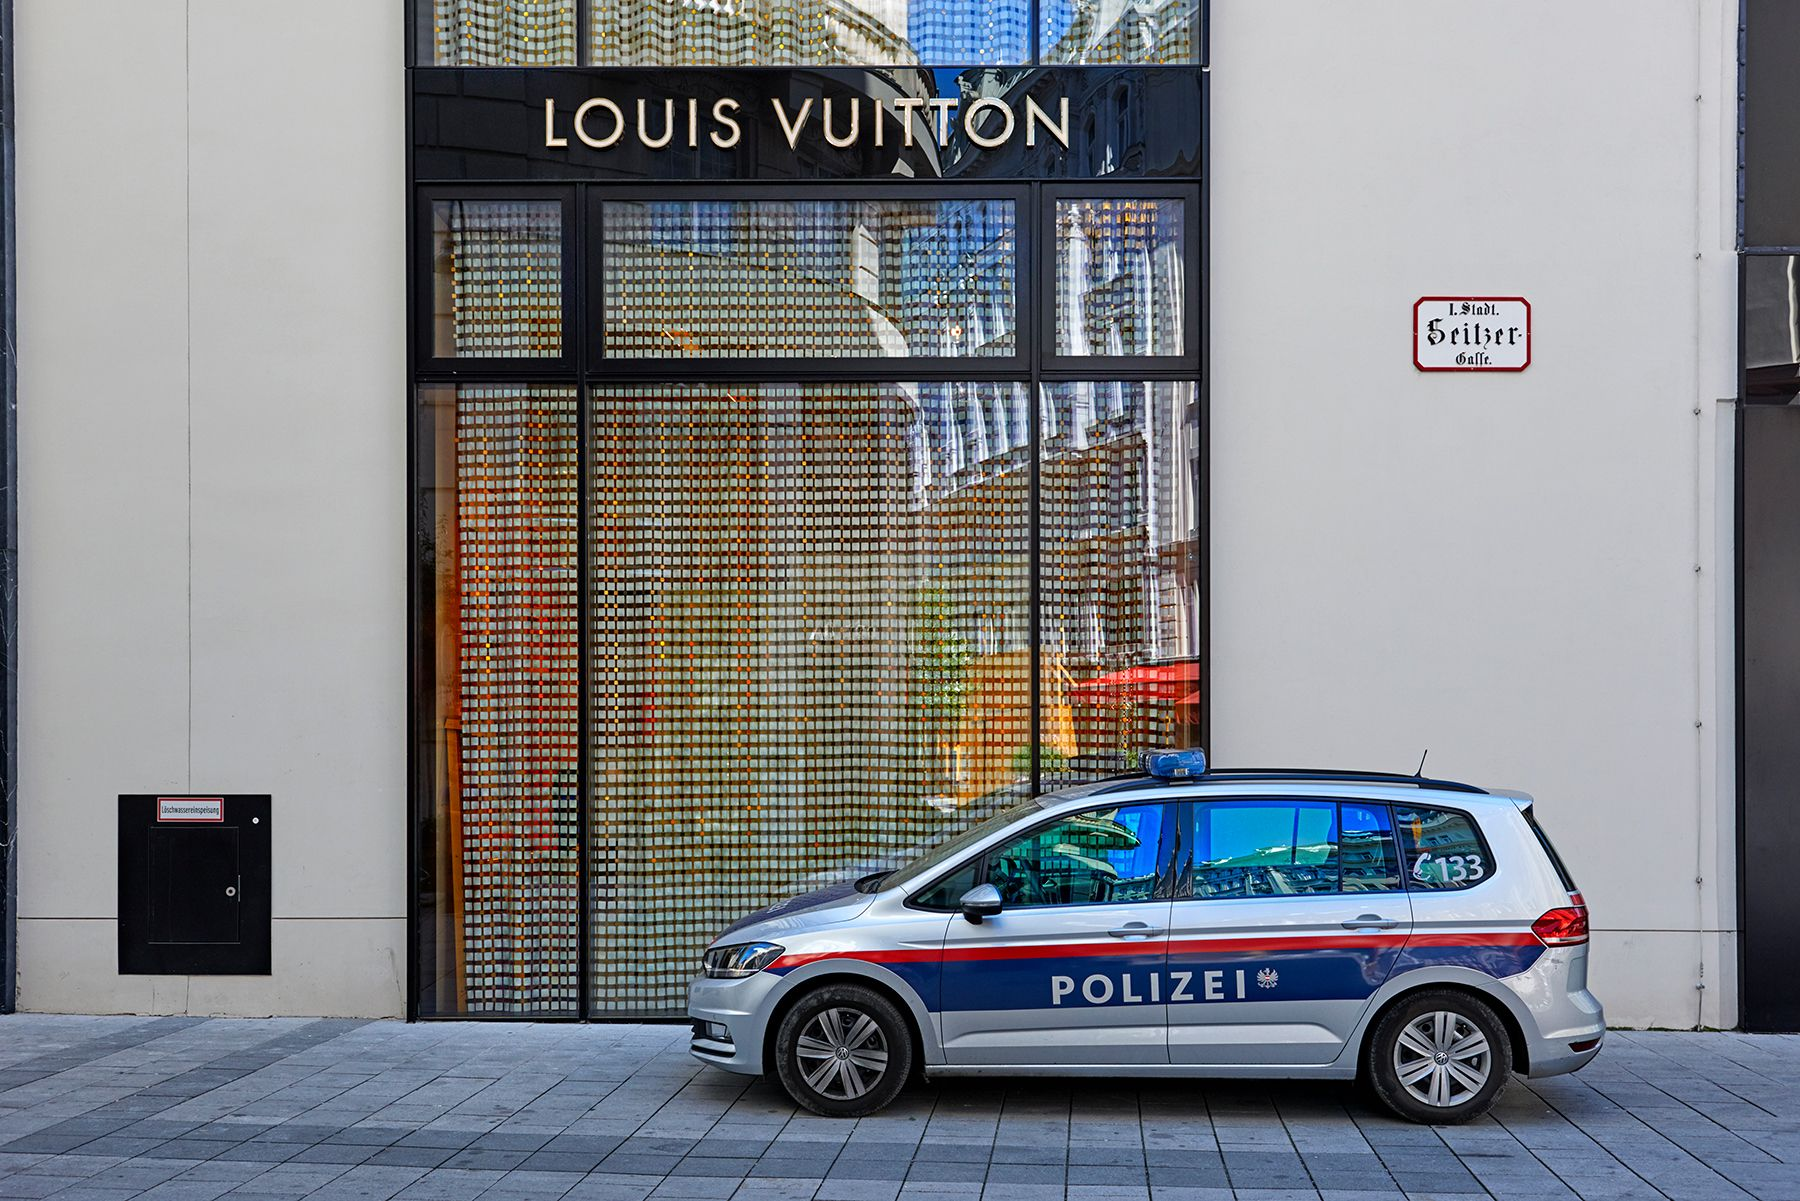 Louis Vuitton and the police